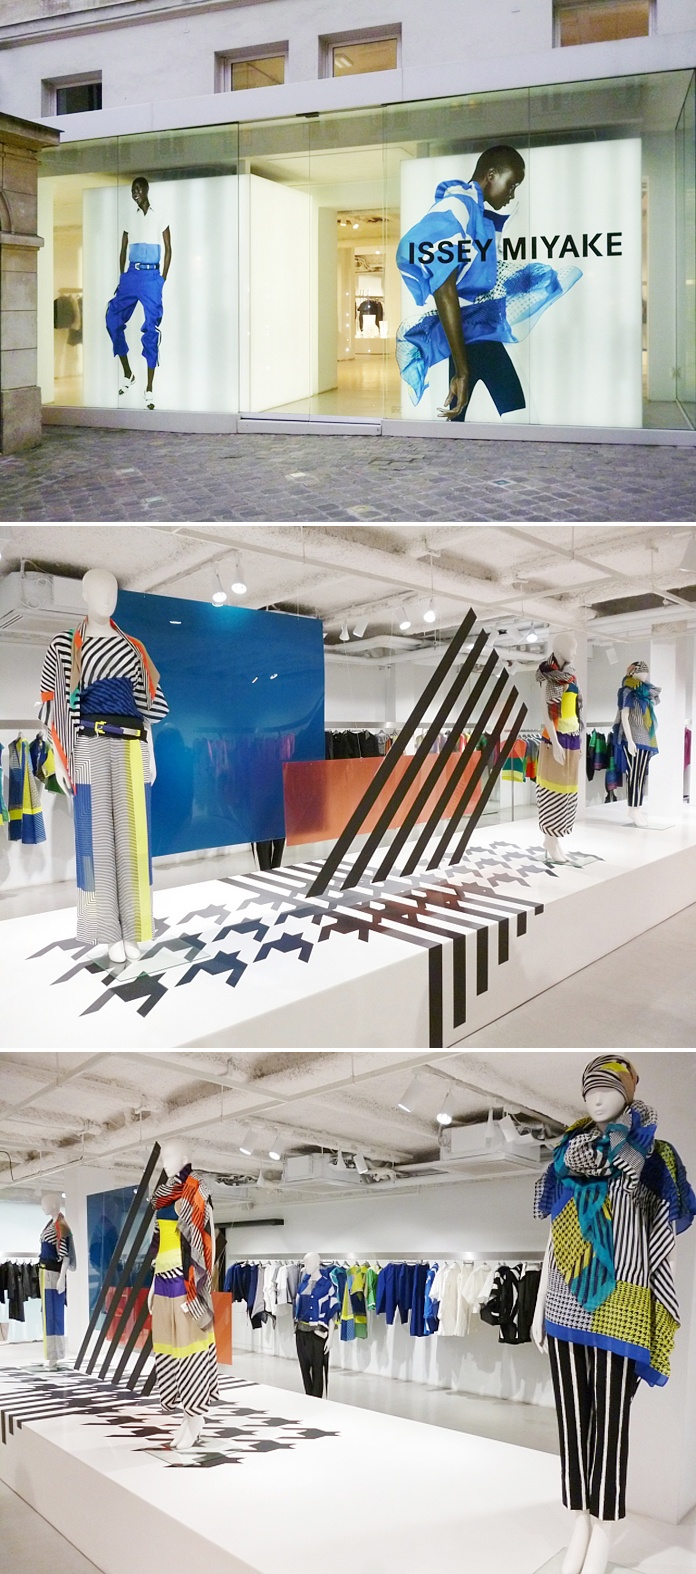 17 best images about interior design on pinterest retail pop up stores and - Issey miyake rue royale ...